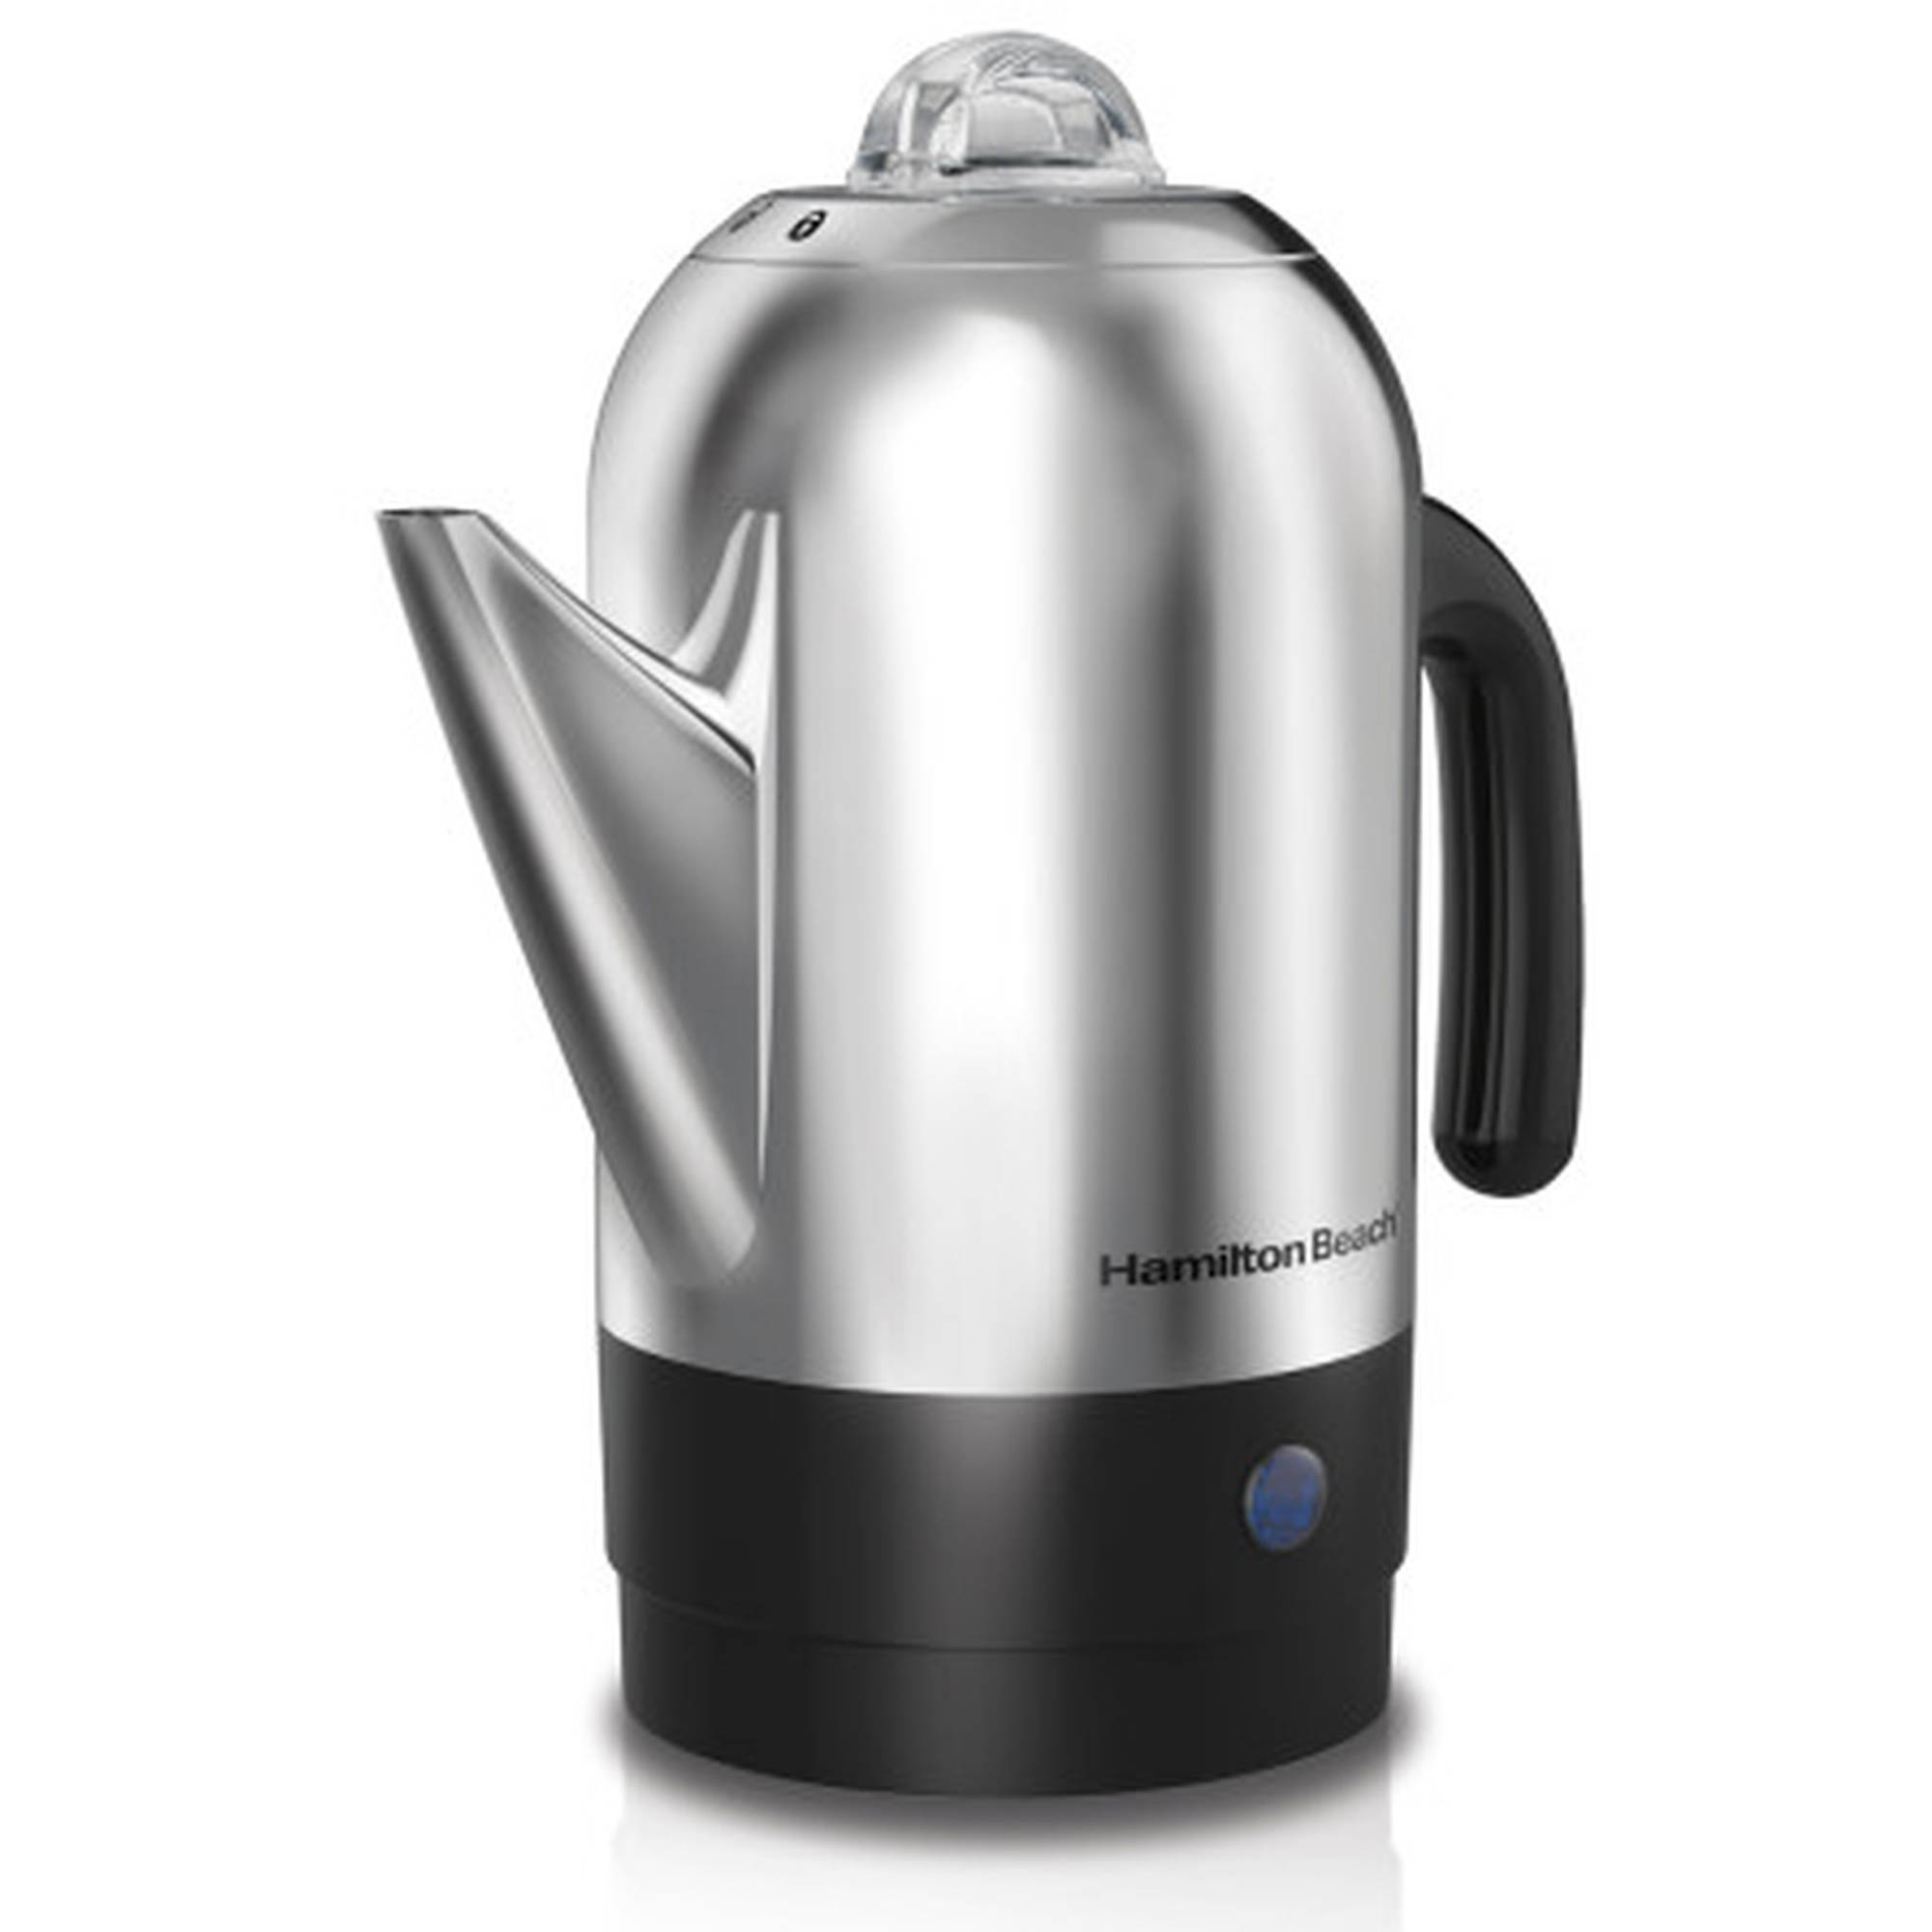 Hamilton Beach 8 Cup Stainless Steel Percolator | Model# 40621R